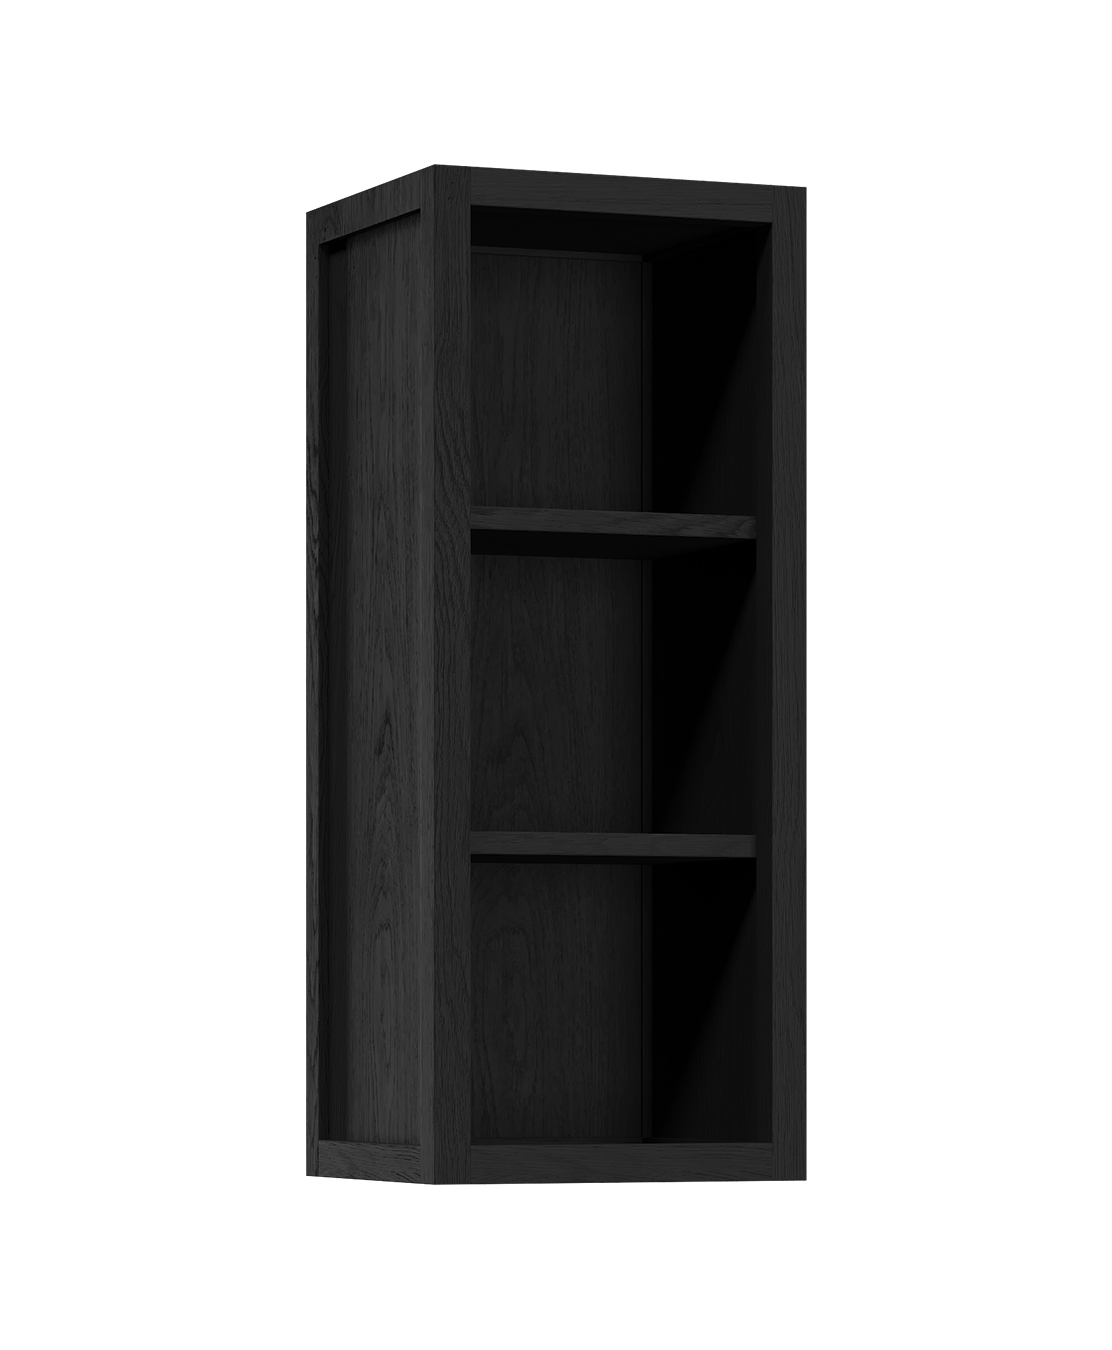 armoire cuisine murale ouverte radix 12 po noir coquo. Black Bedroom Furniture Sets. Home Design Ideas